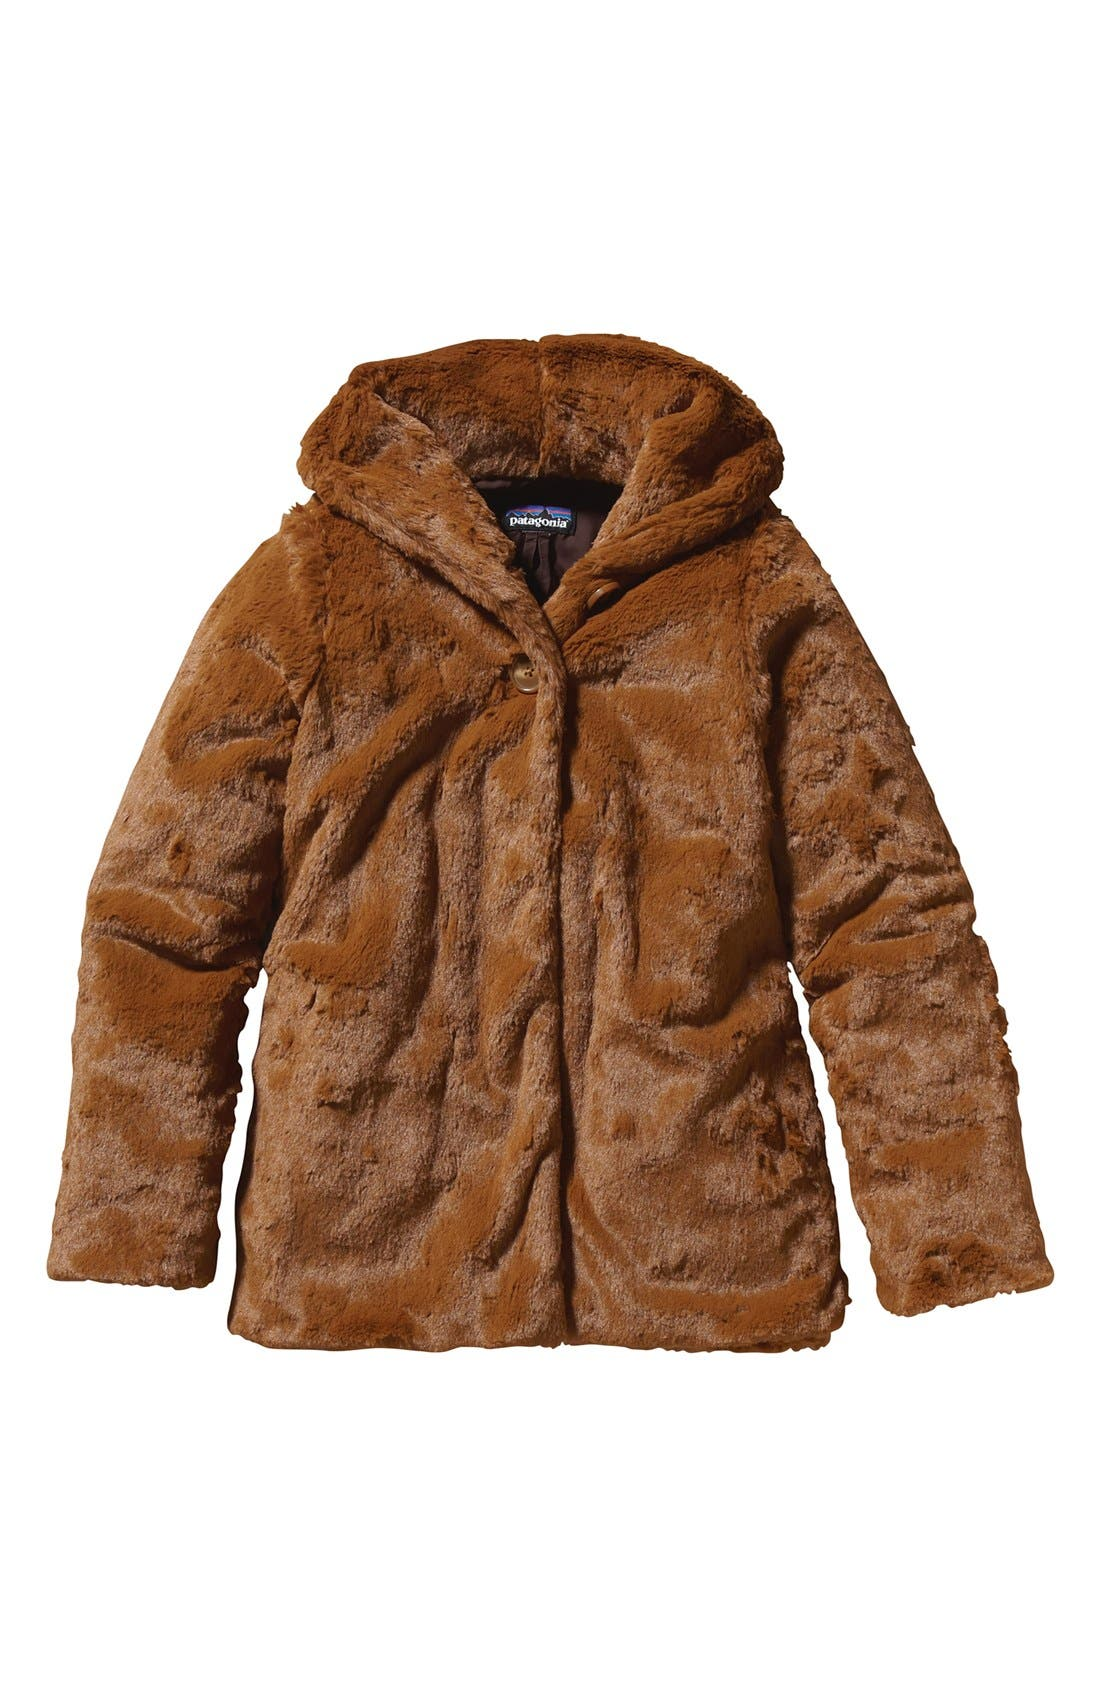 Main Image - Patagonia 'Pelage' Jacket (Little Girls & Big Girls)